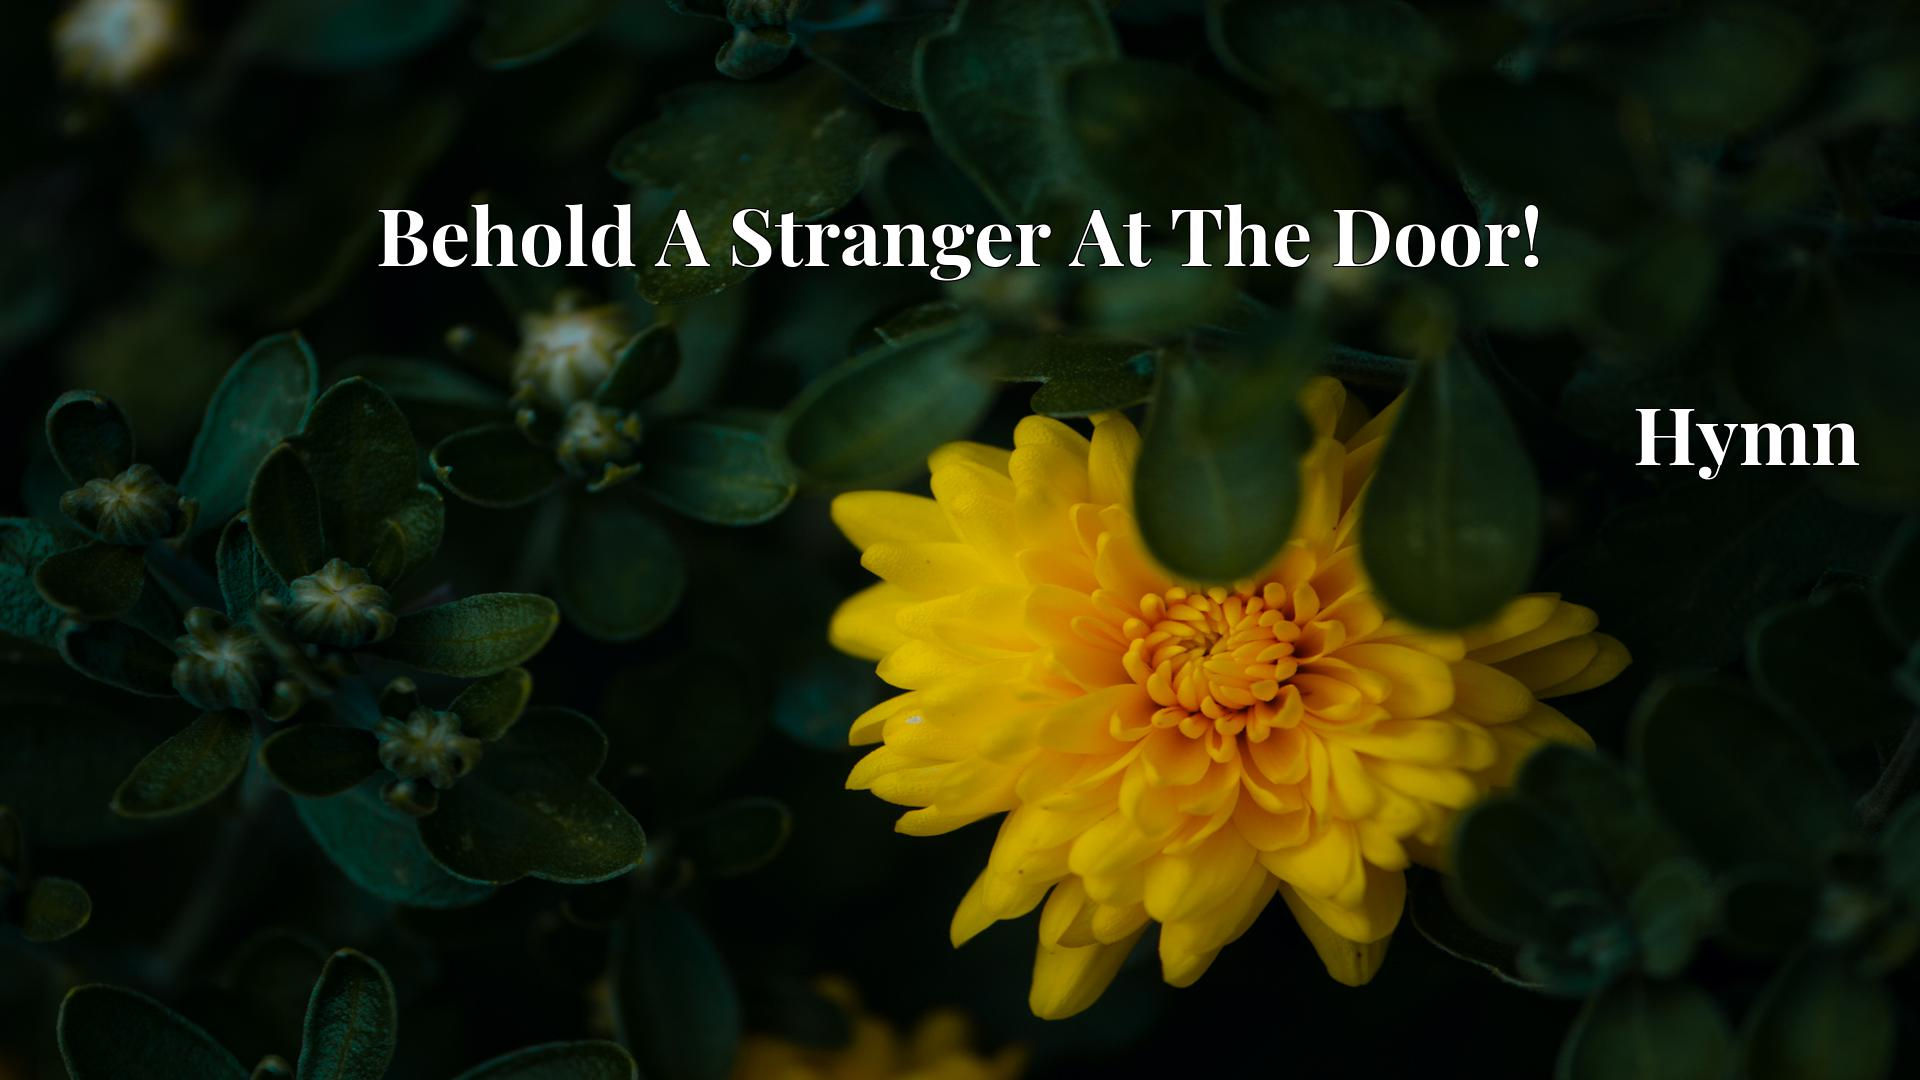 Behold A Stranger At The Door! Hymn